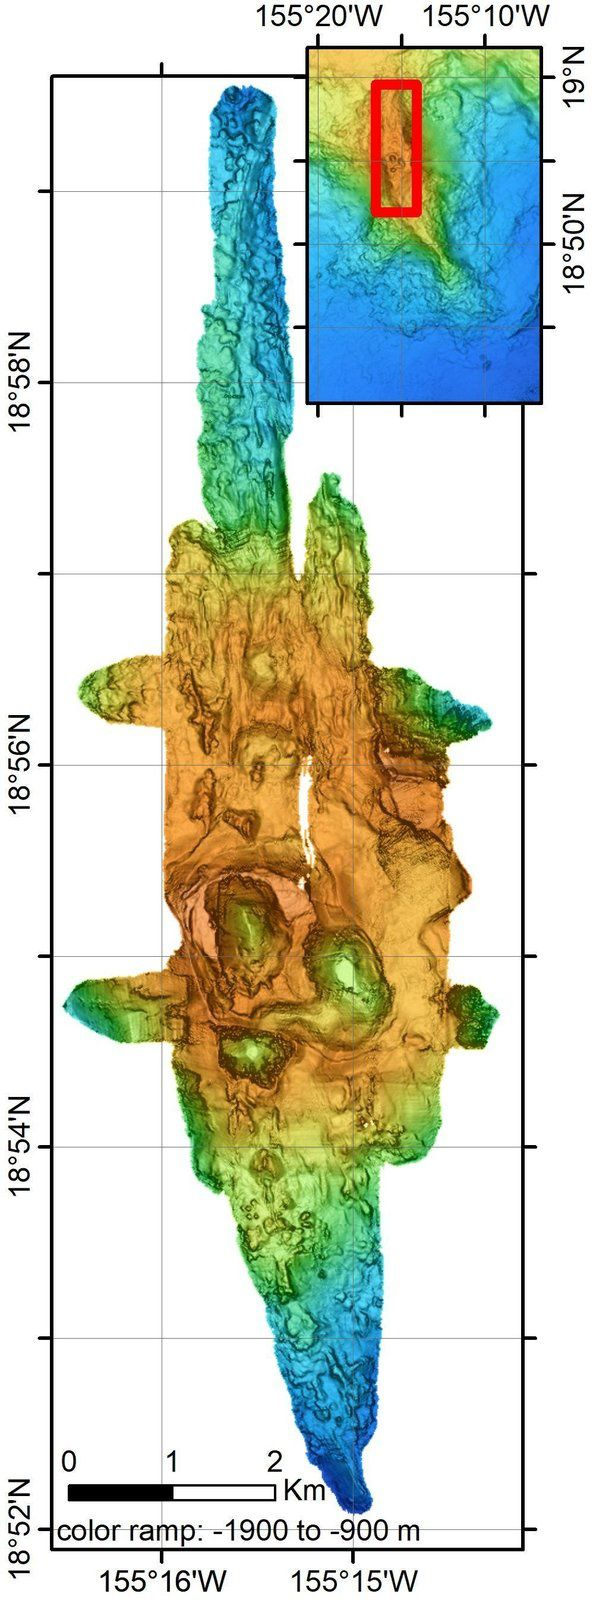 Volcan sous-marin Lō'ihi, à Hawaii - zone d'étude - Doc. in Structure of Lō'ihi Seamount, Hawai'i and Lava Flow Morphology From High-Resolution Mapping  / références en sources